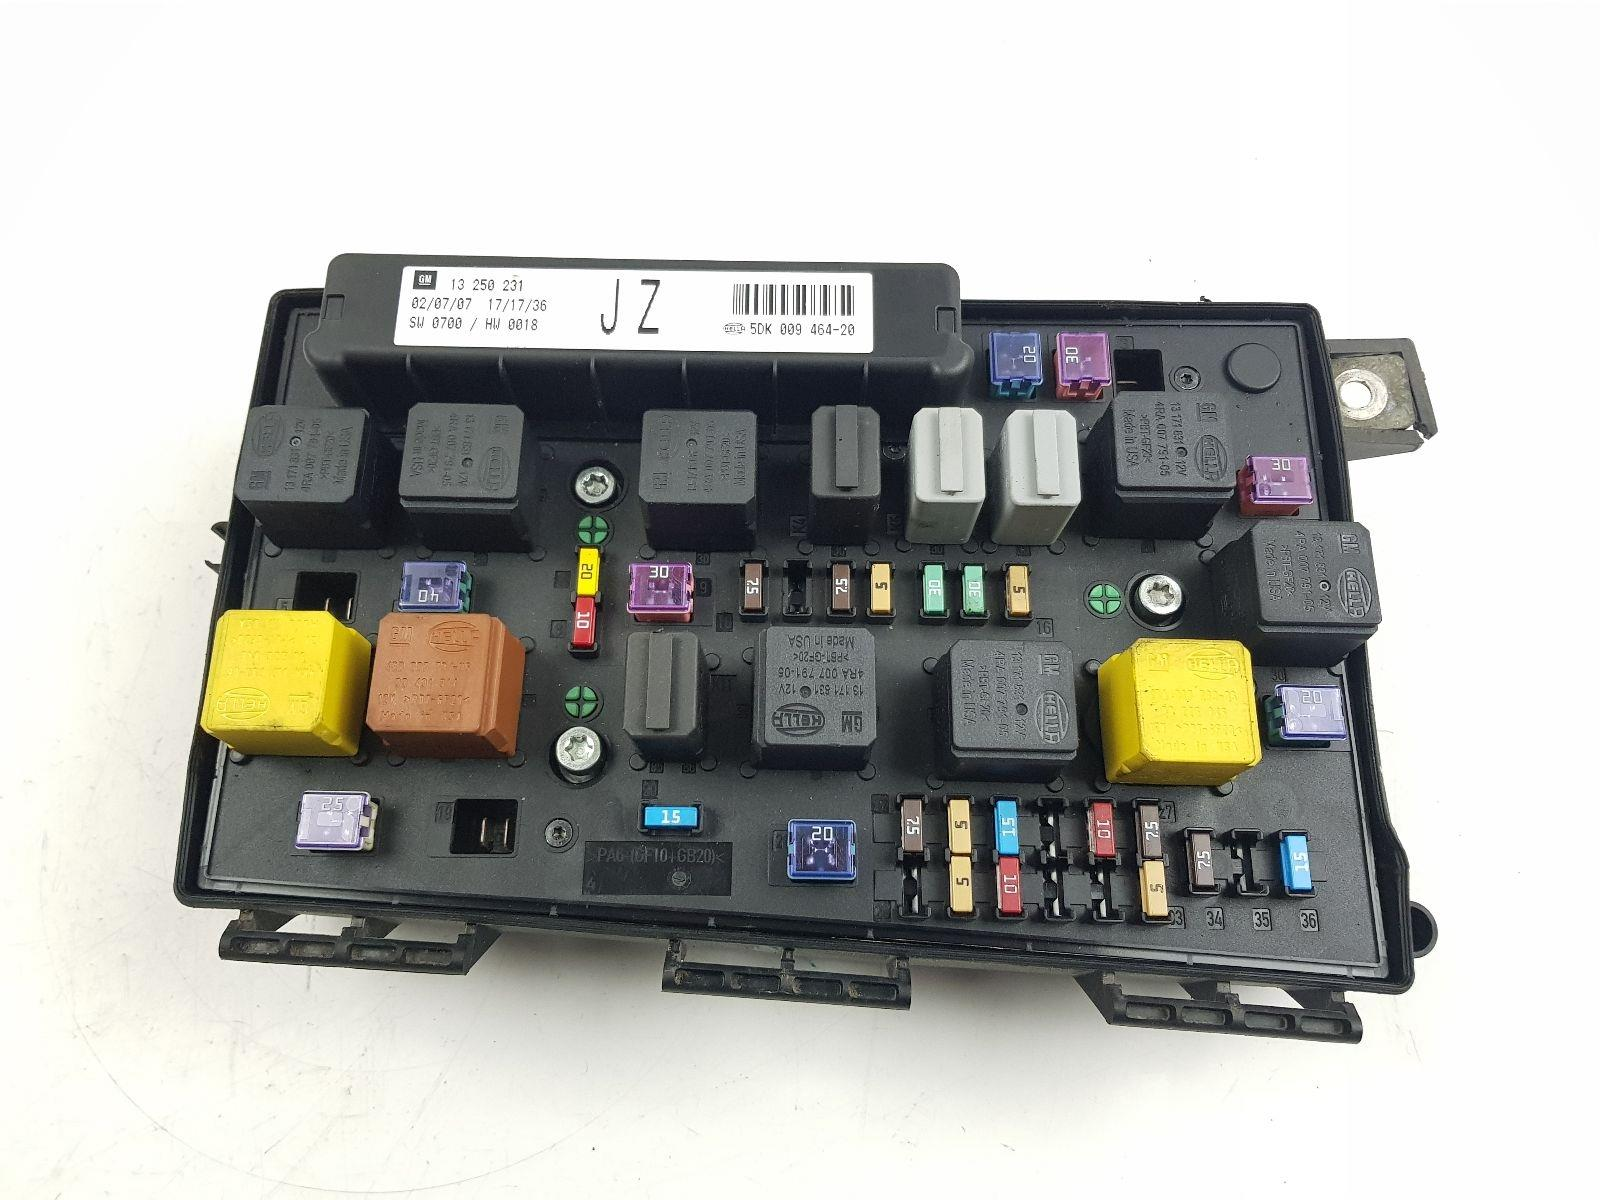 vauxhall astra 52 fuse box skoda roomster 2010 on fuse box  diesel manual  for sale from  skoda roomster 2010 on fuse box  diesel